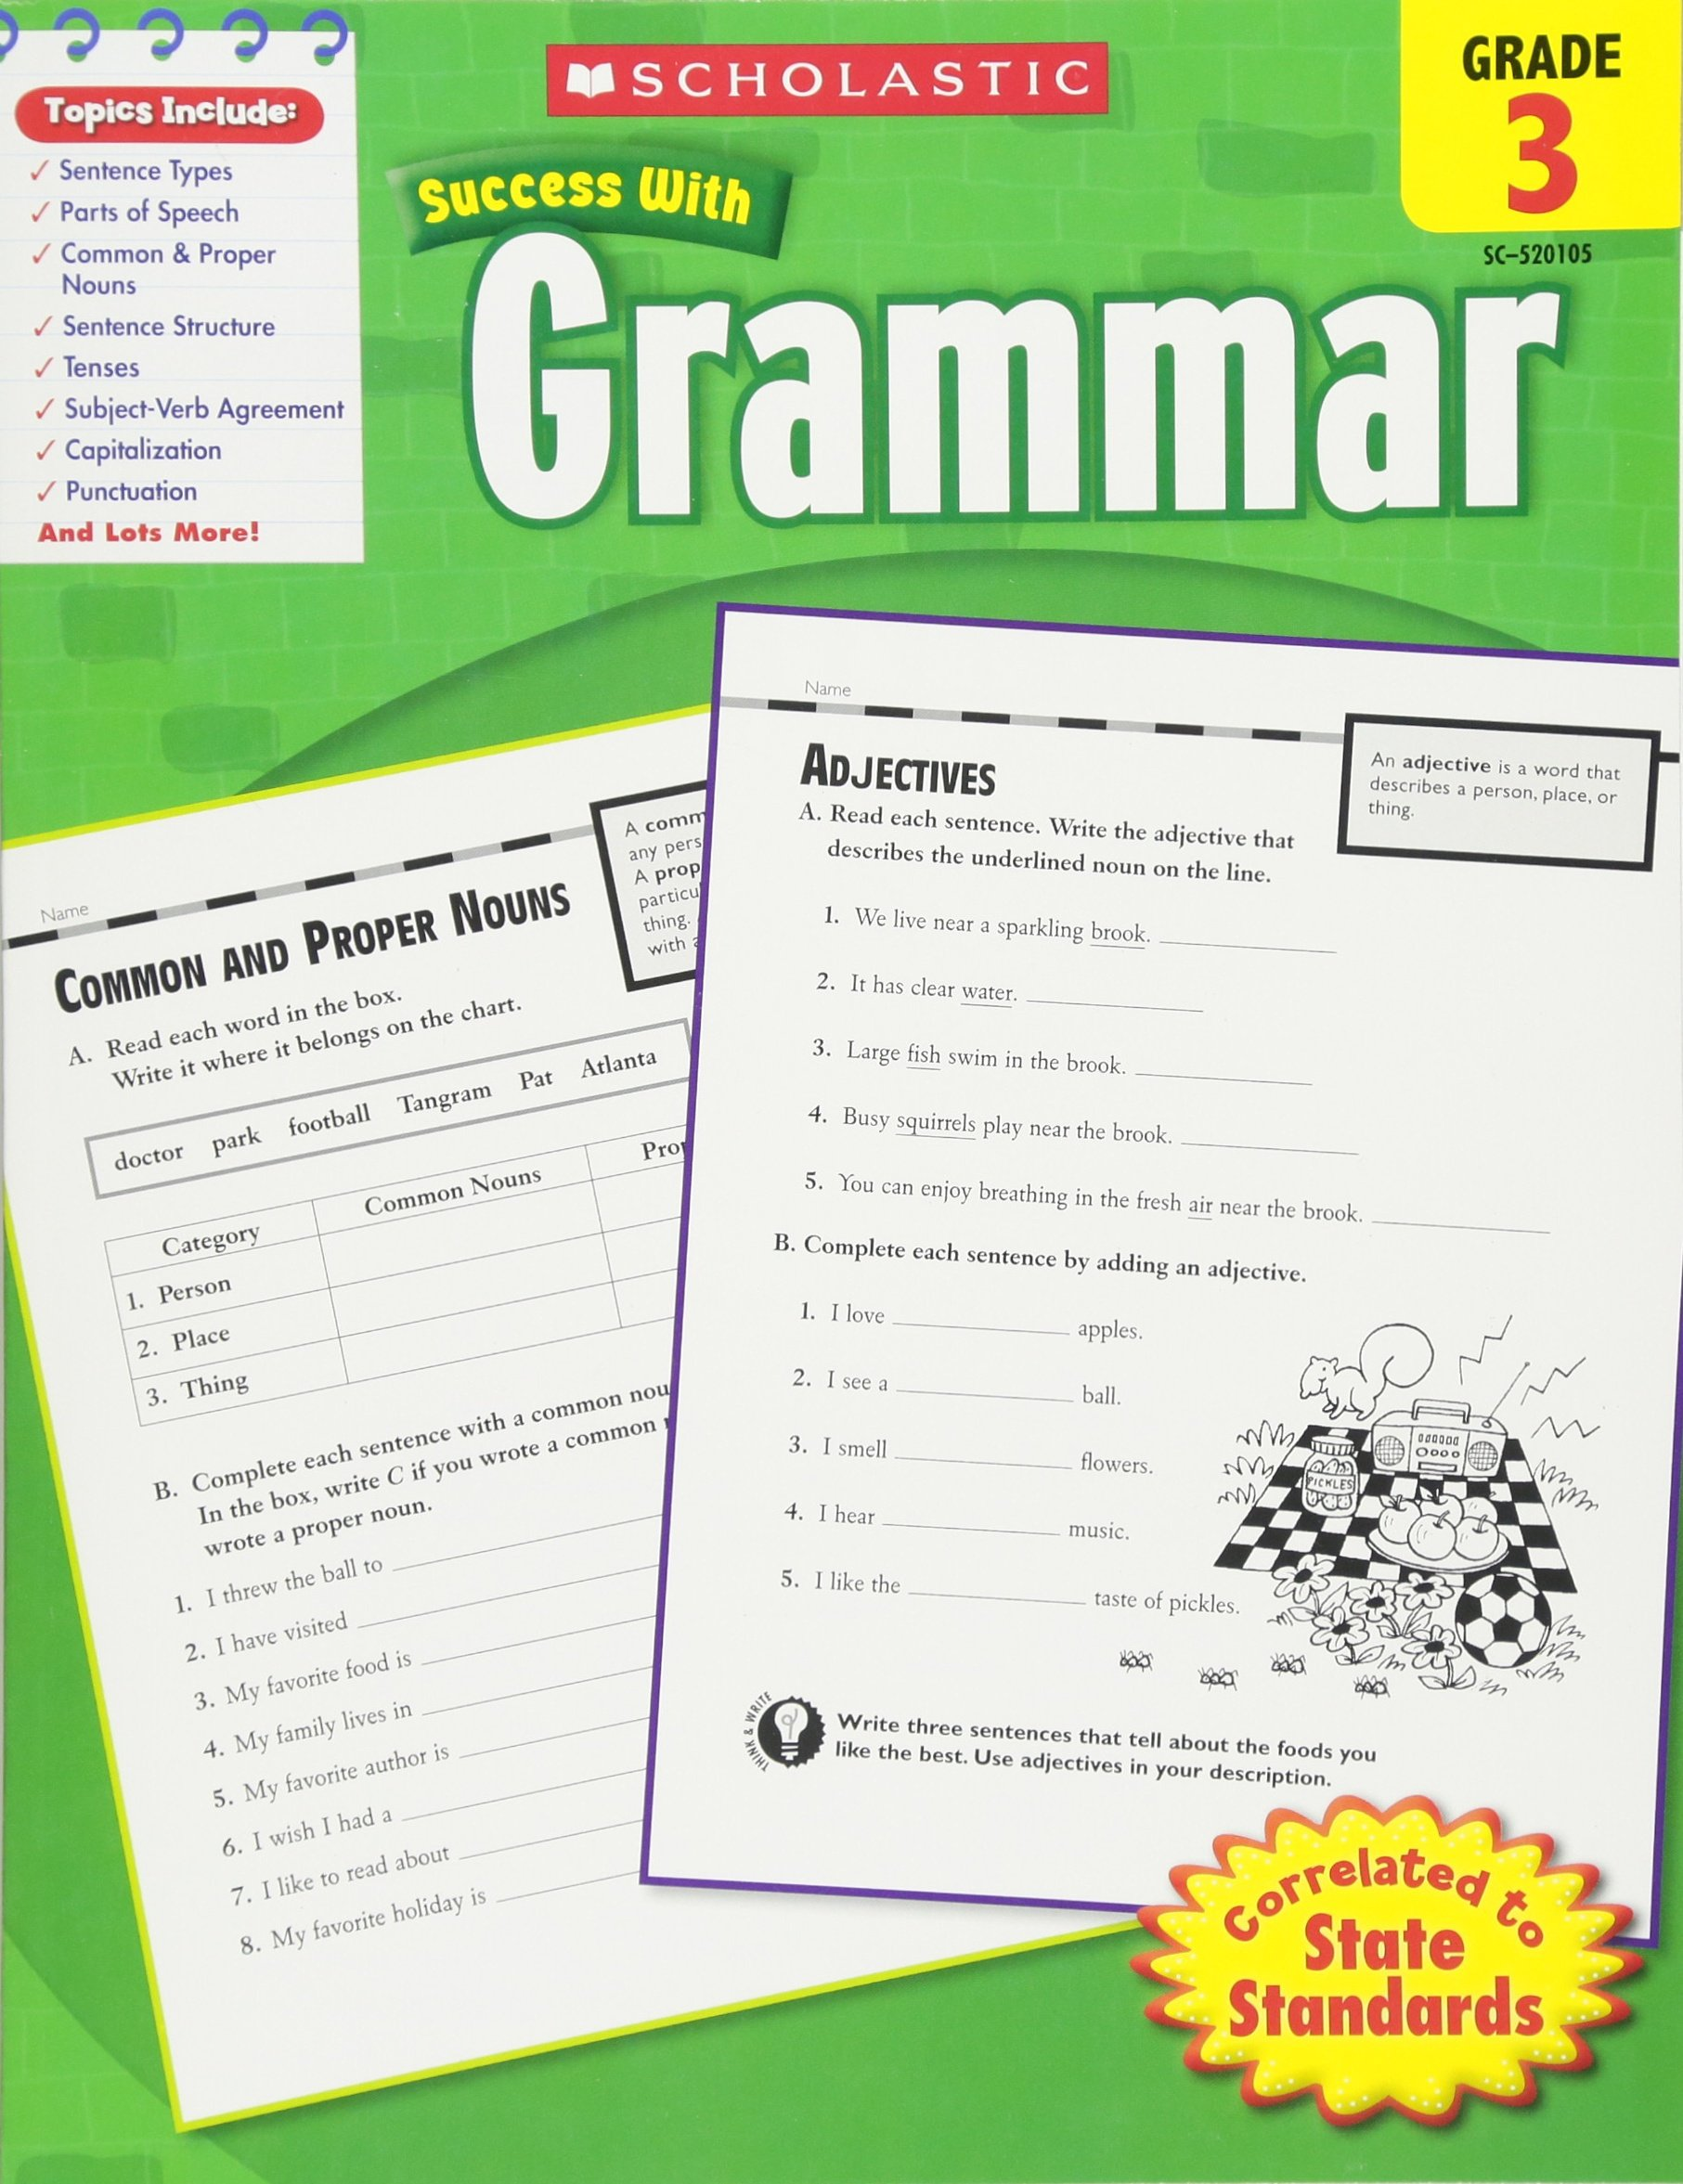 Buy Scholastic Success With Grammar - Grade 3 Book Online at Low Prices in  India | Scholastic Success With Grammar - Grade 3 Reviews & Ratings -  Amazon.in